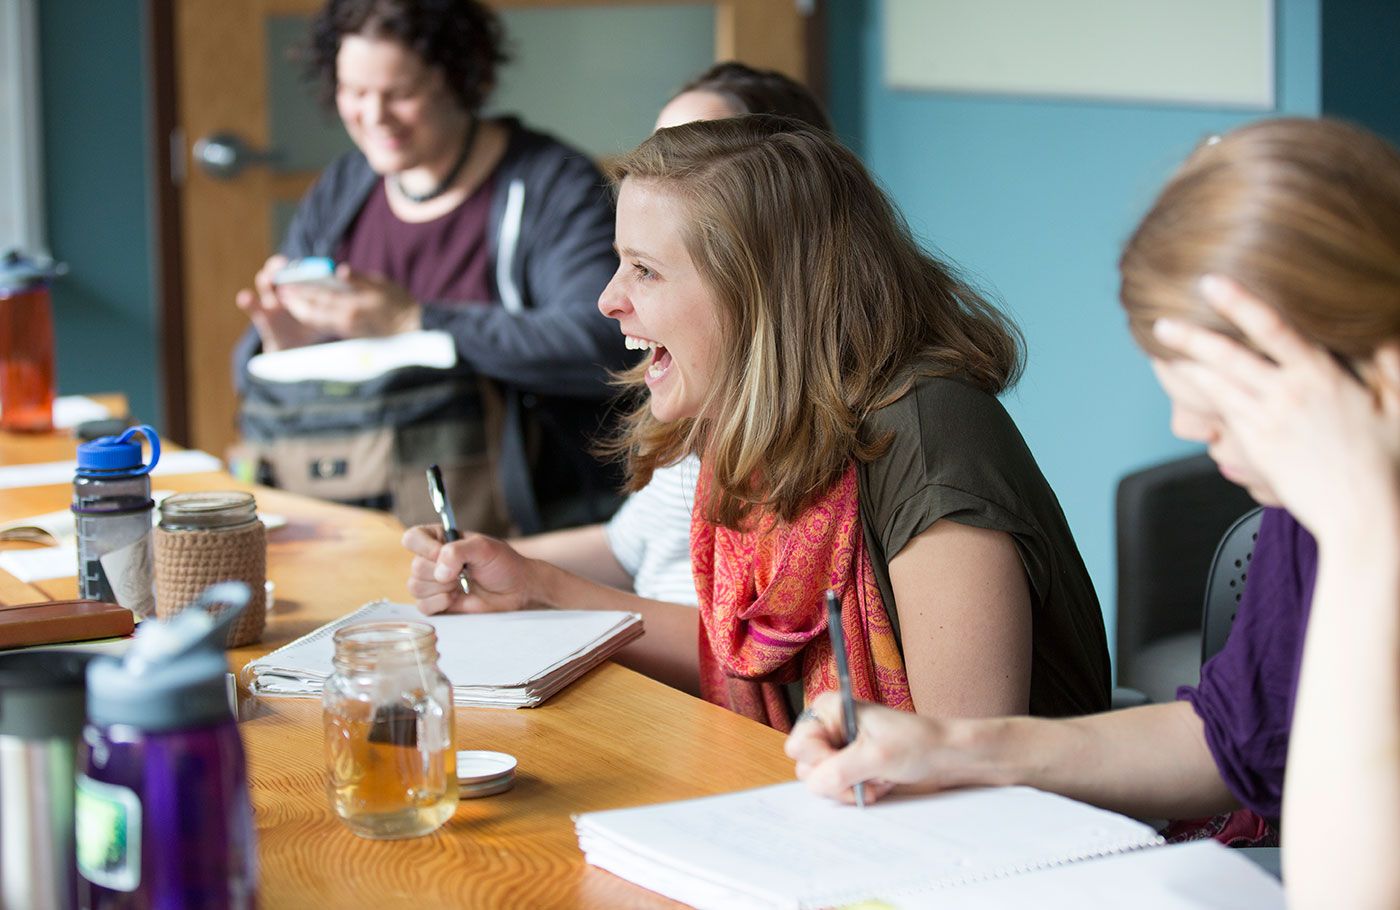 Female students laughing together as they study around a conference table.